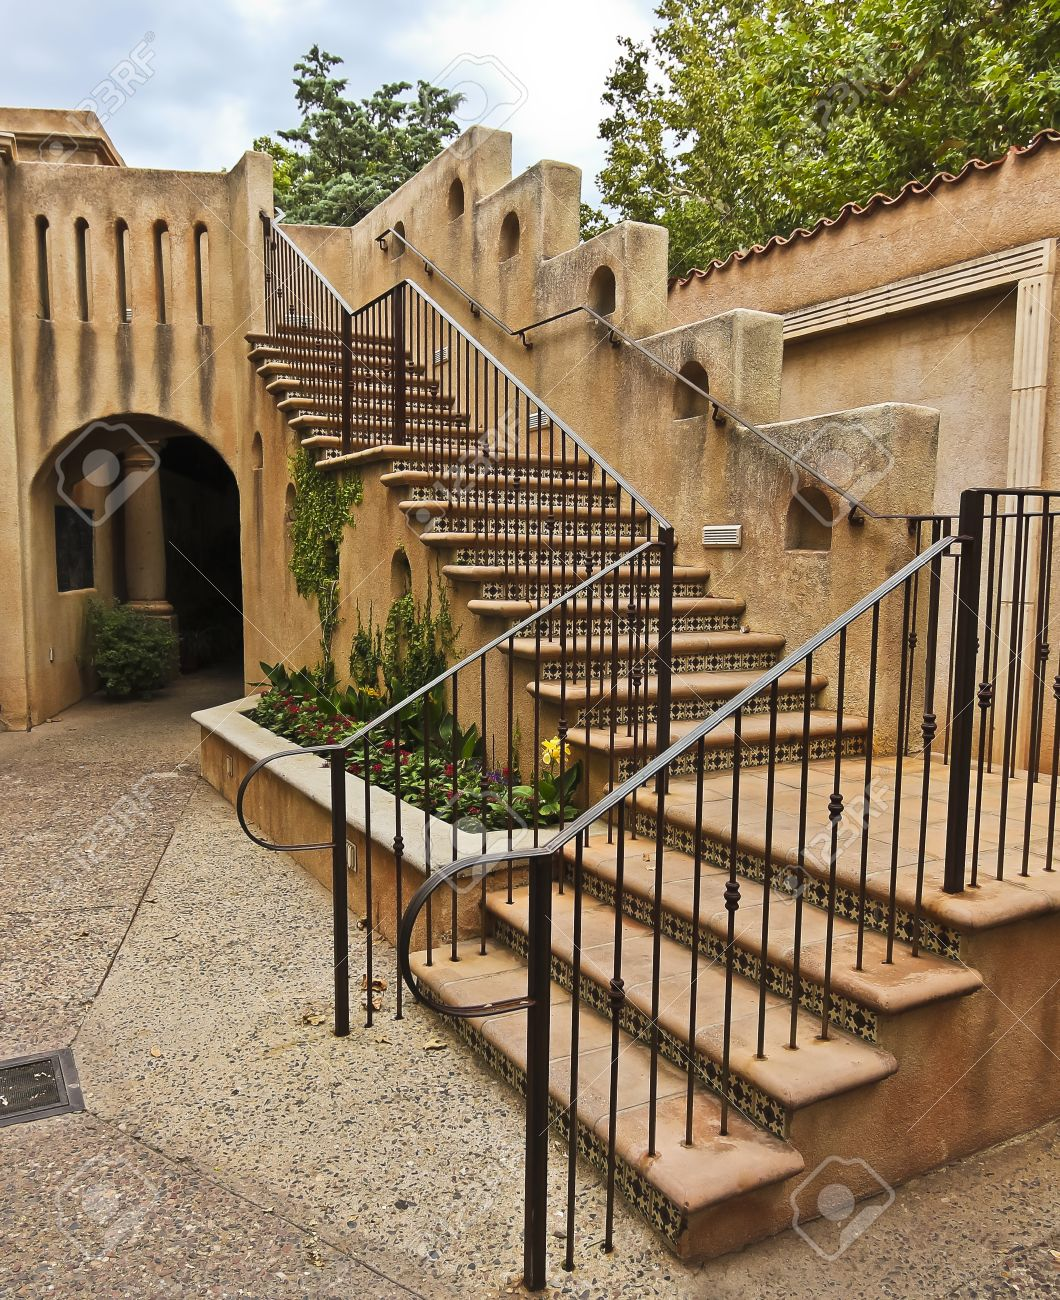 Engrossing 13576082 A Courtyard Staircase Sedona Arizona On July 26 2 Spanish Colonial Architecture History Spanish Colonial Architecture Plans Spanish Colonial Architecture At Tlaquepaque houzz-02 Spanish Colonial Architecture